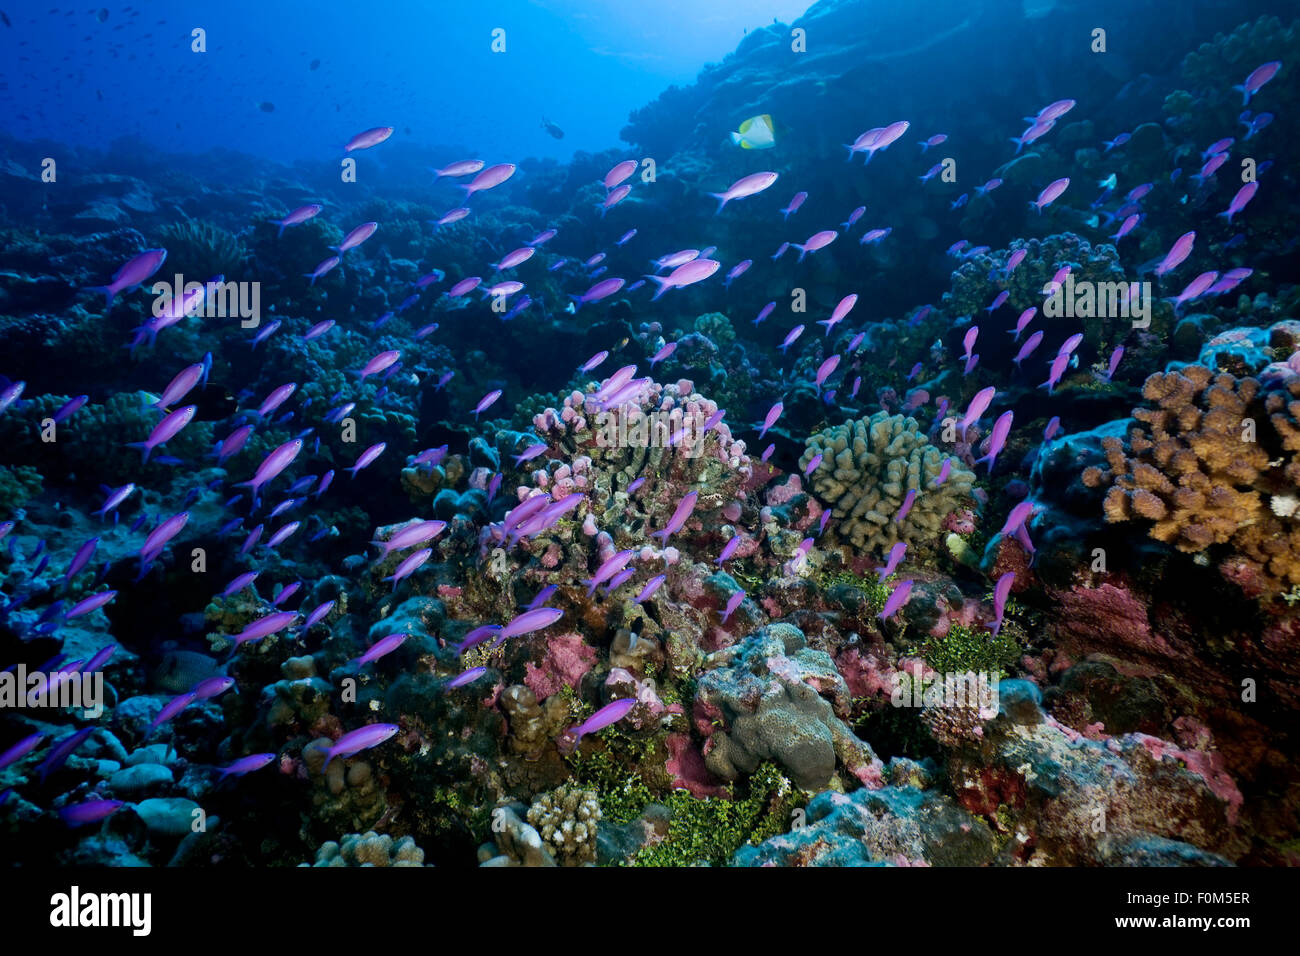 SCHOOL OF ANTHIAS FISH SWIMMING FRONT OF REEF CORAL - Stock Image